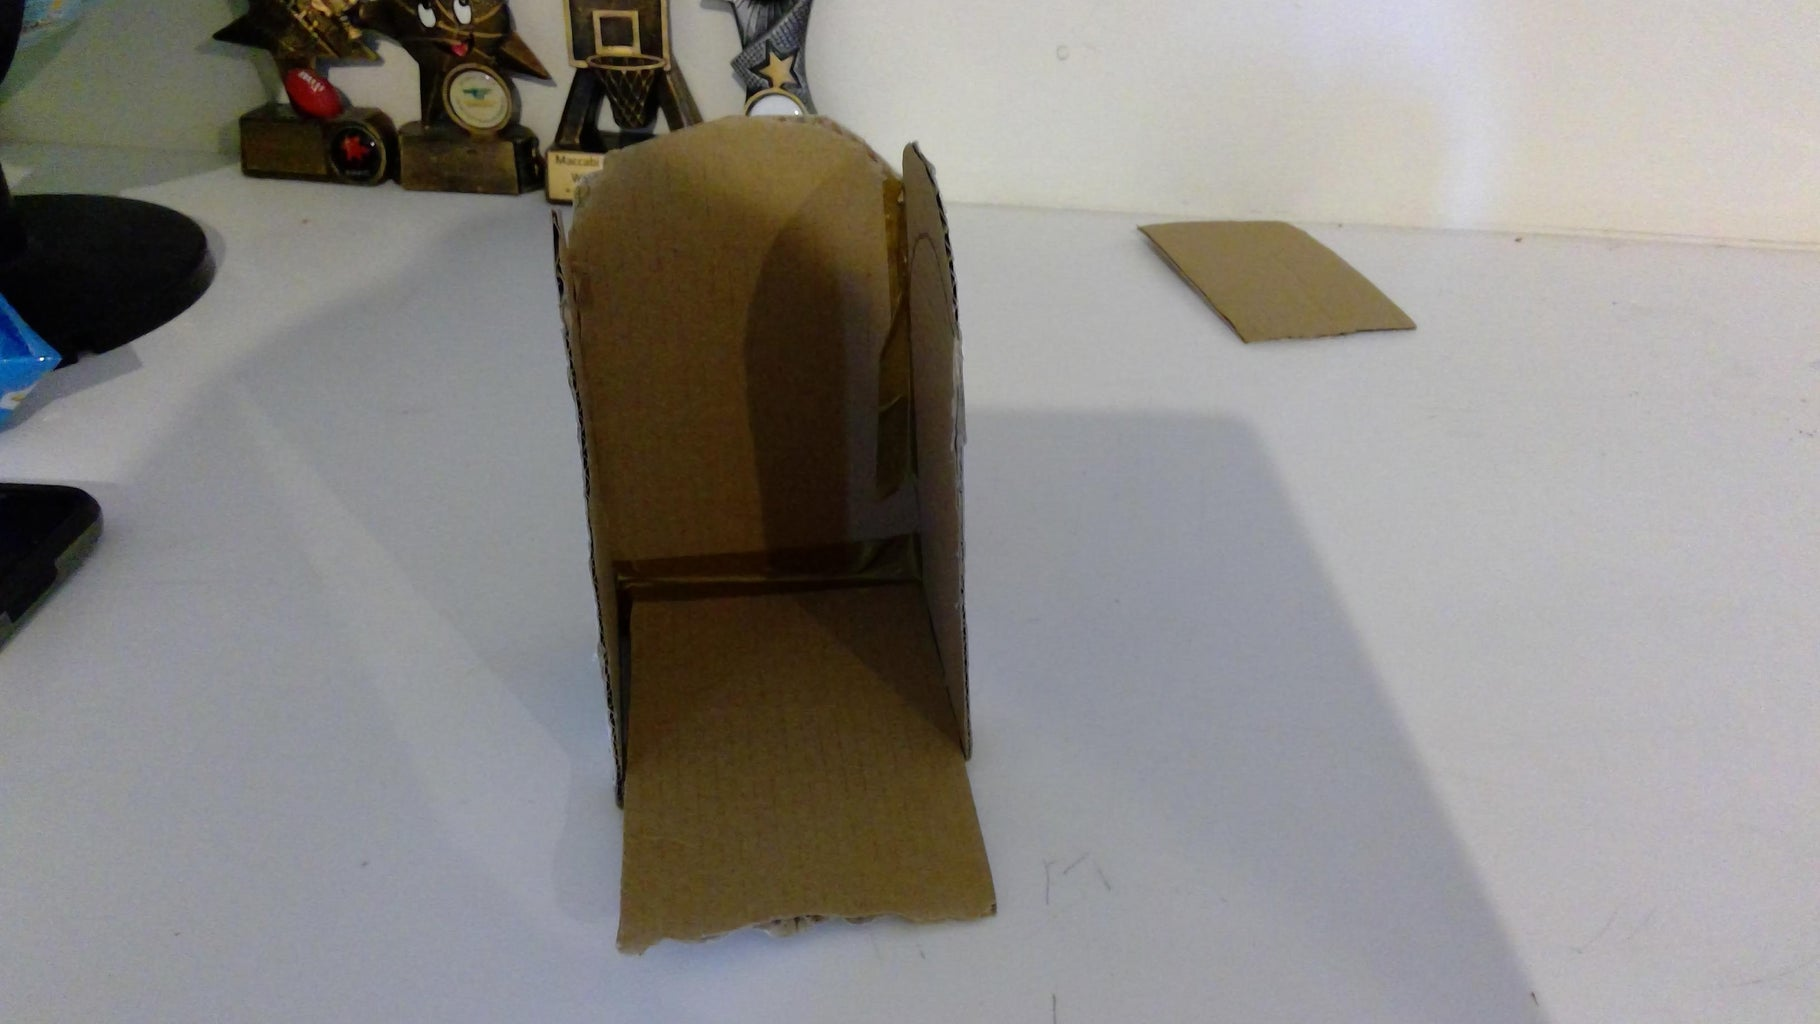 Cut a Cardboard Rectangle and Place It on a Slight Angle So That Ball Can Roll